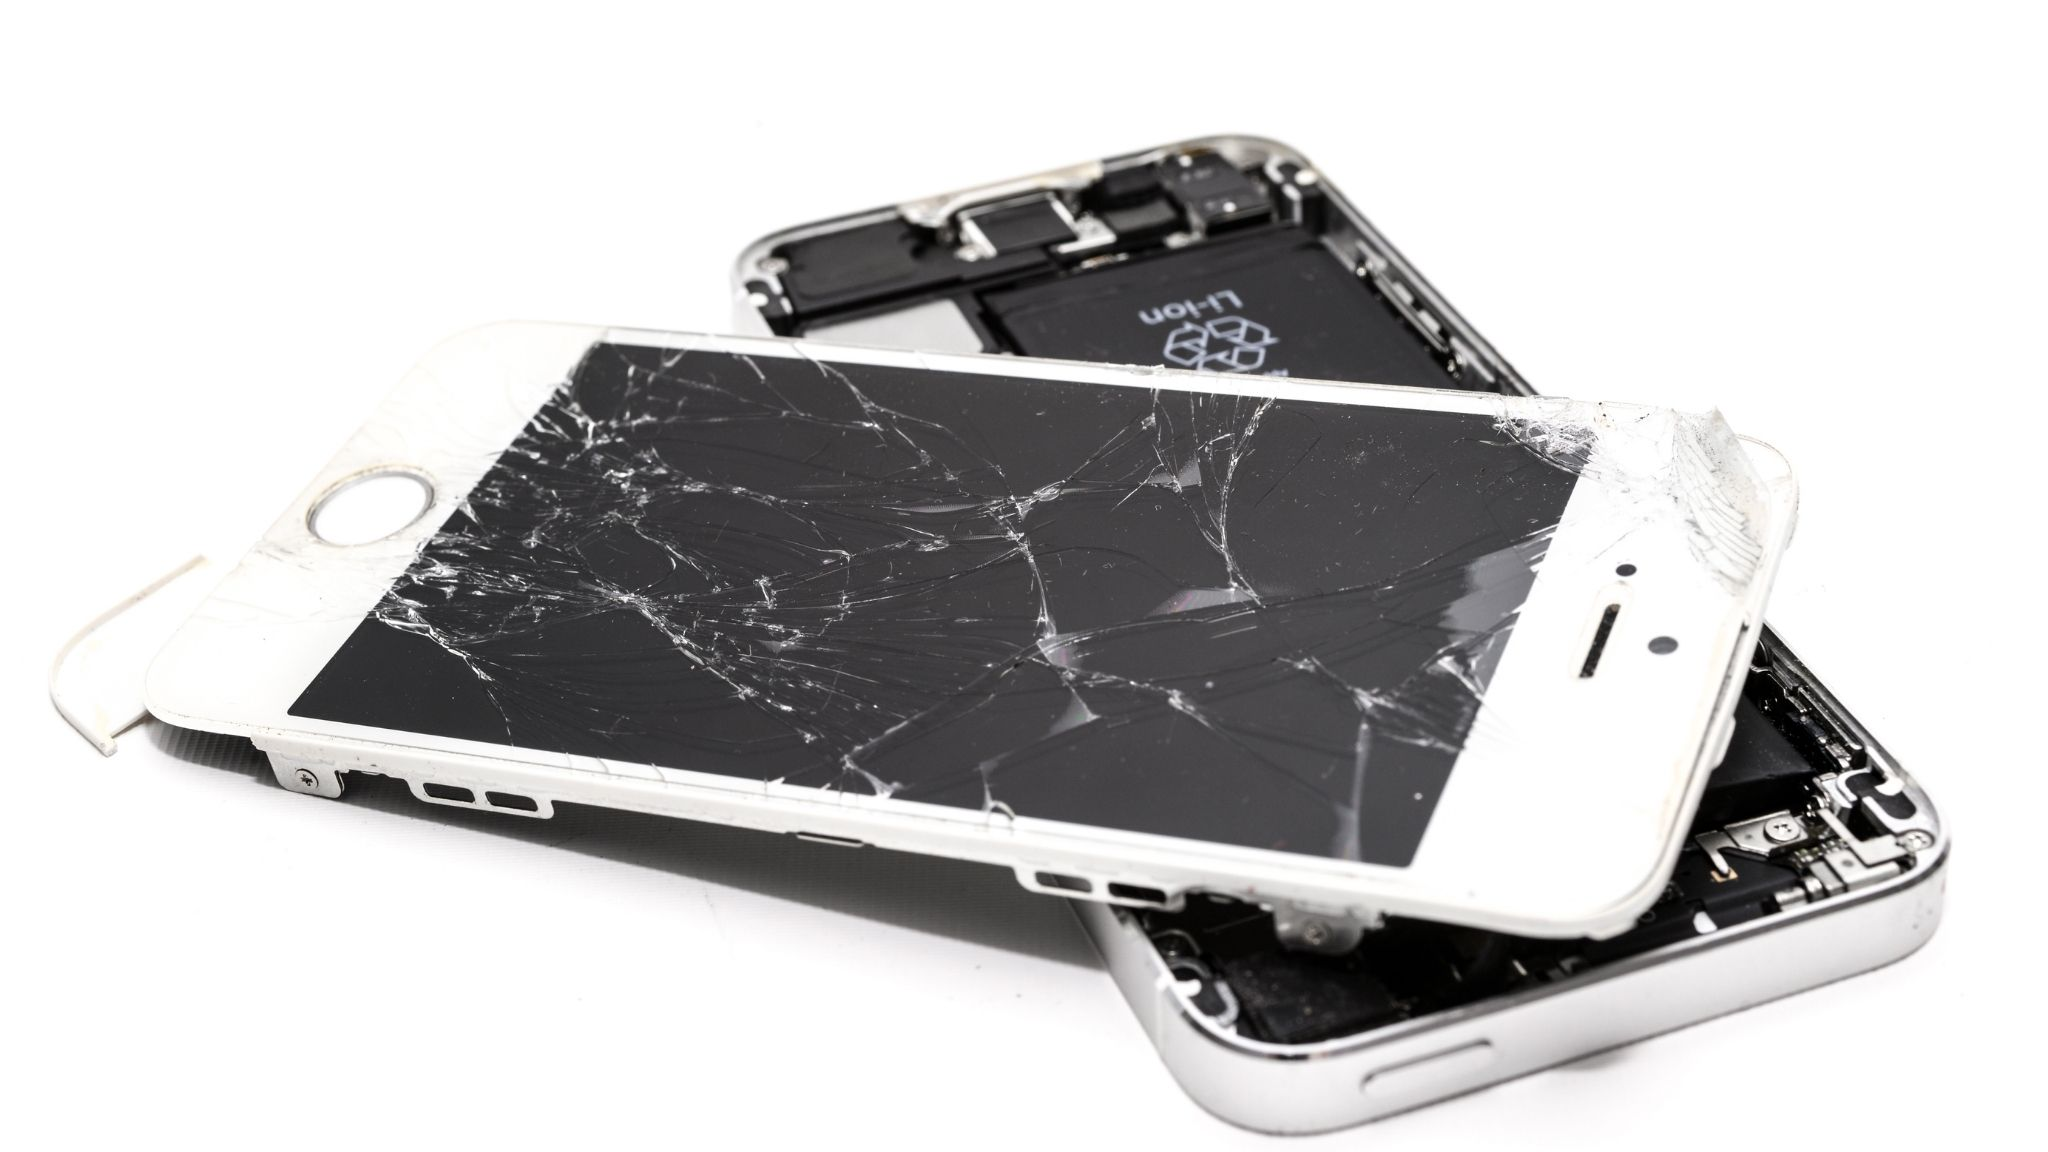 image of a white smartphone split in half with a cracked screen.